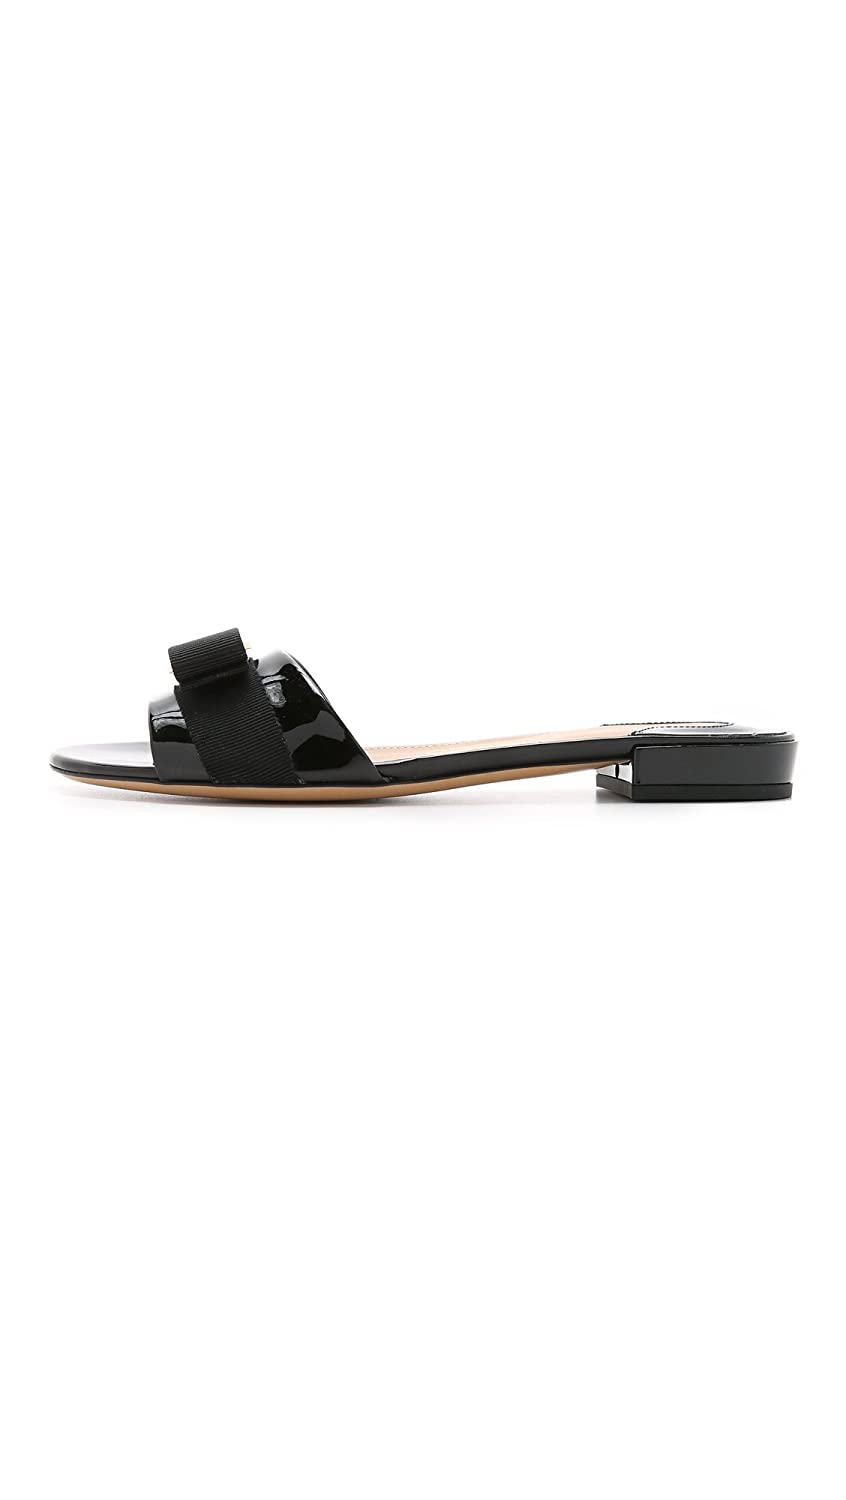 3a5f731b20ff Amazon.com  Salvatore Ferragamo Women s Gil Slides  Shoes